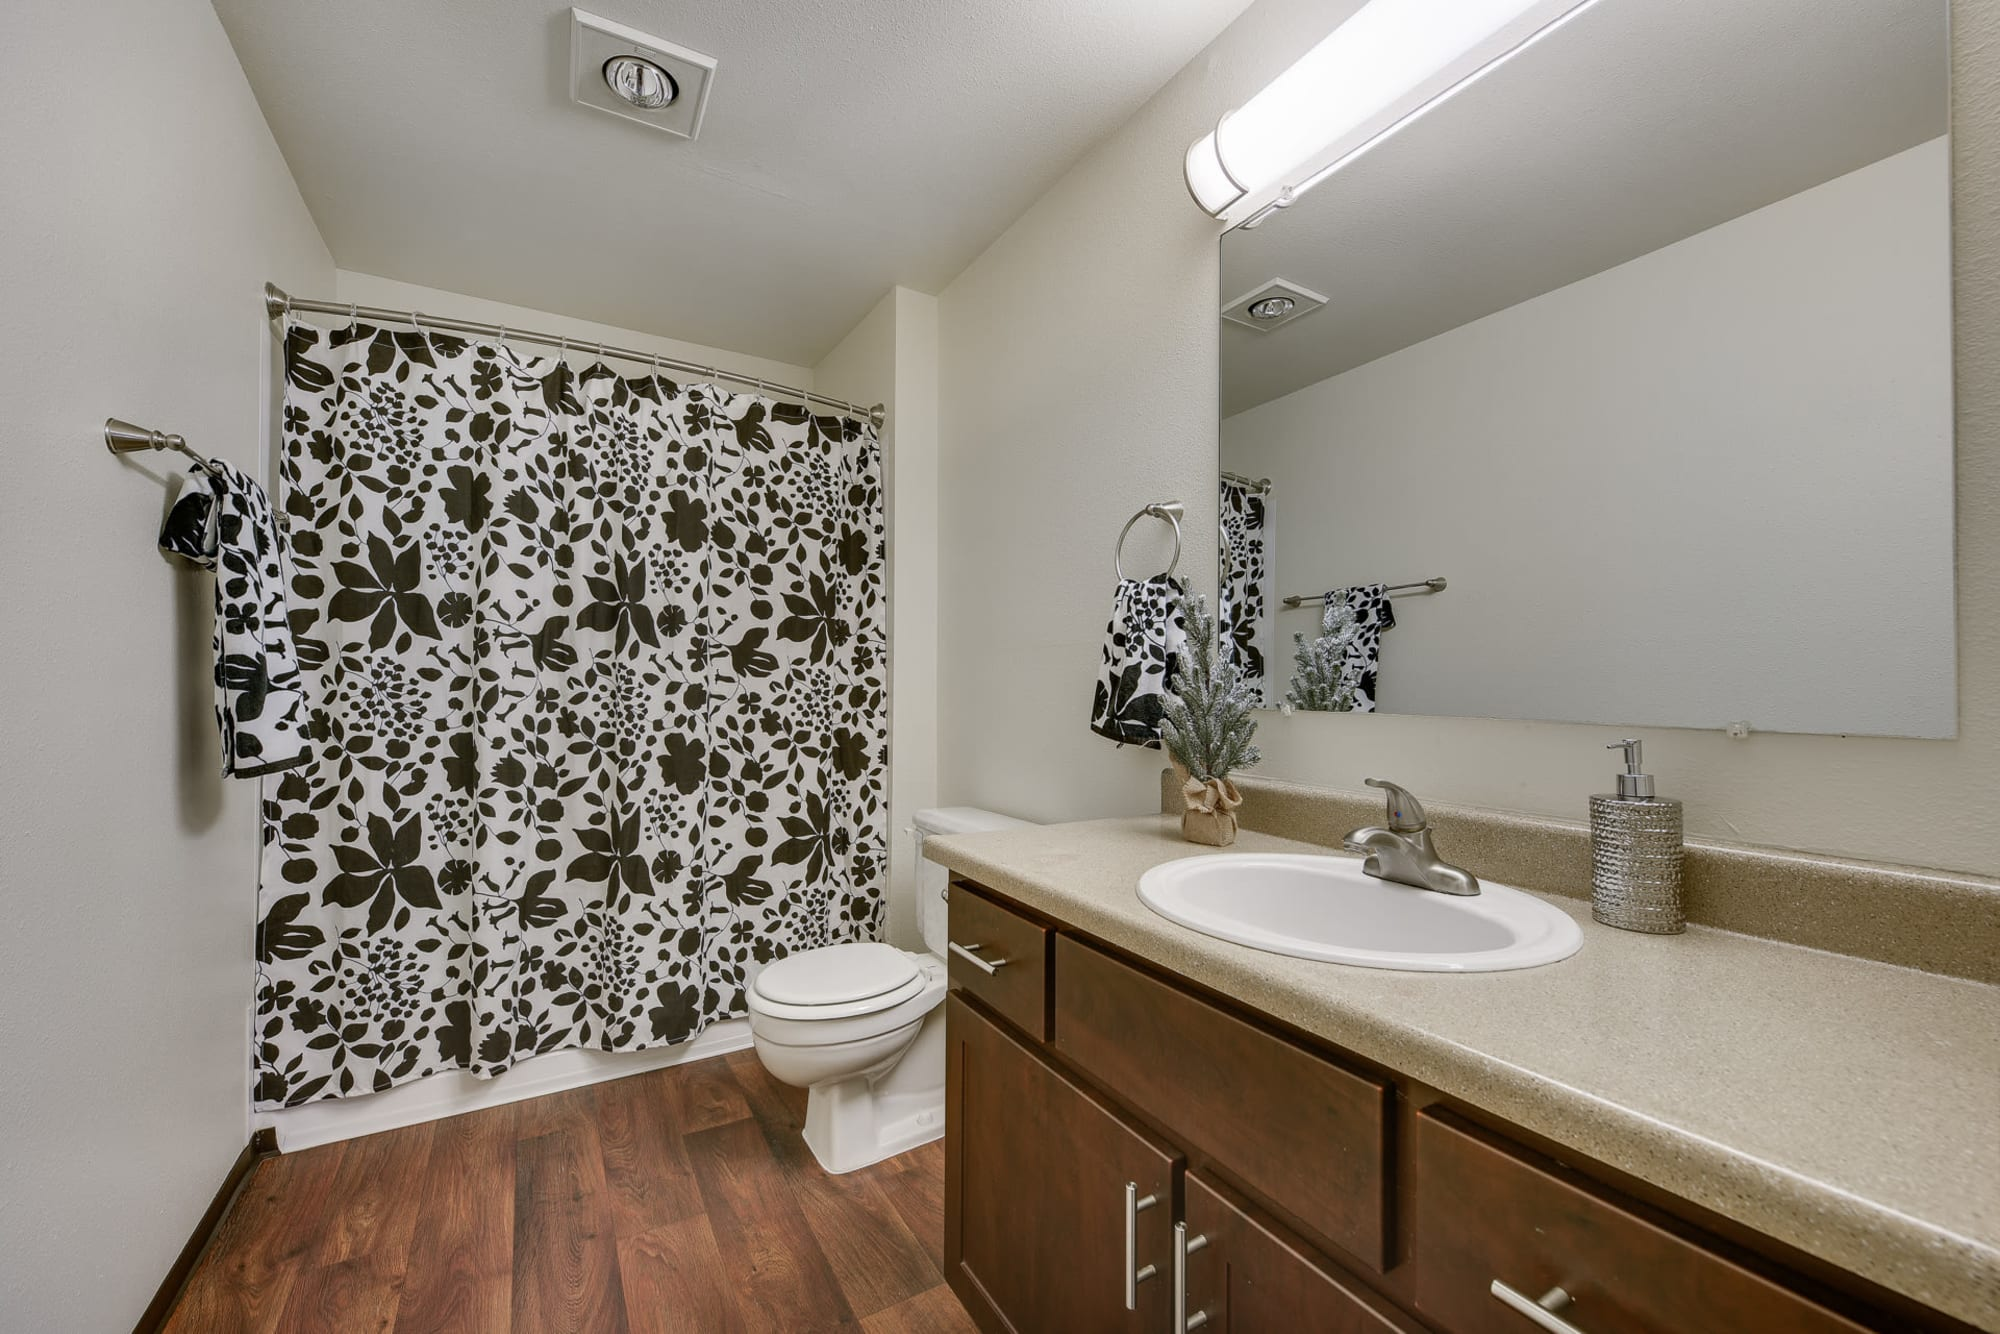 Bathroom with a tub at Renaissance at 29th Apartments in Vancouver, Washington